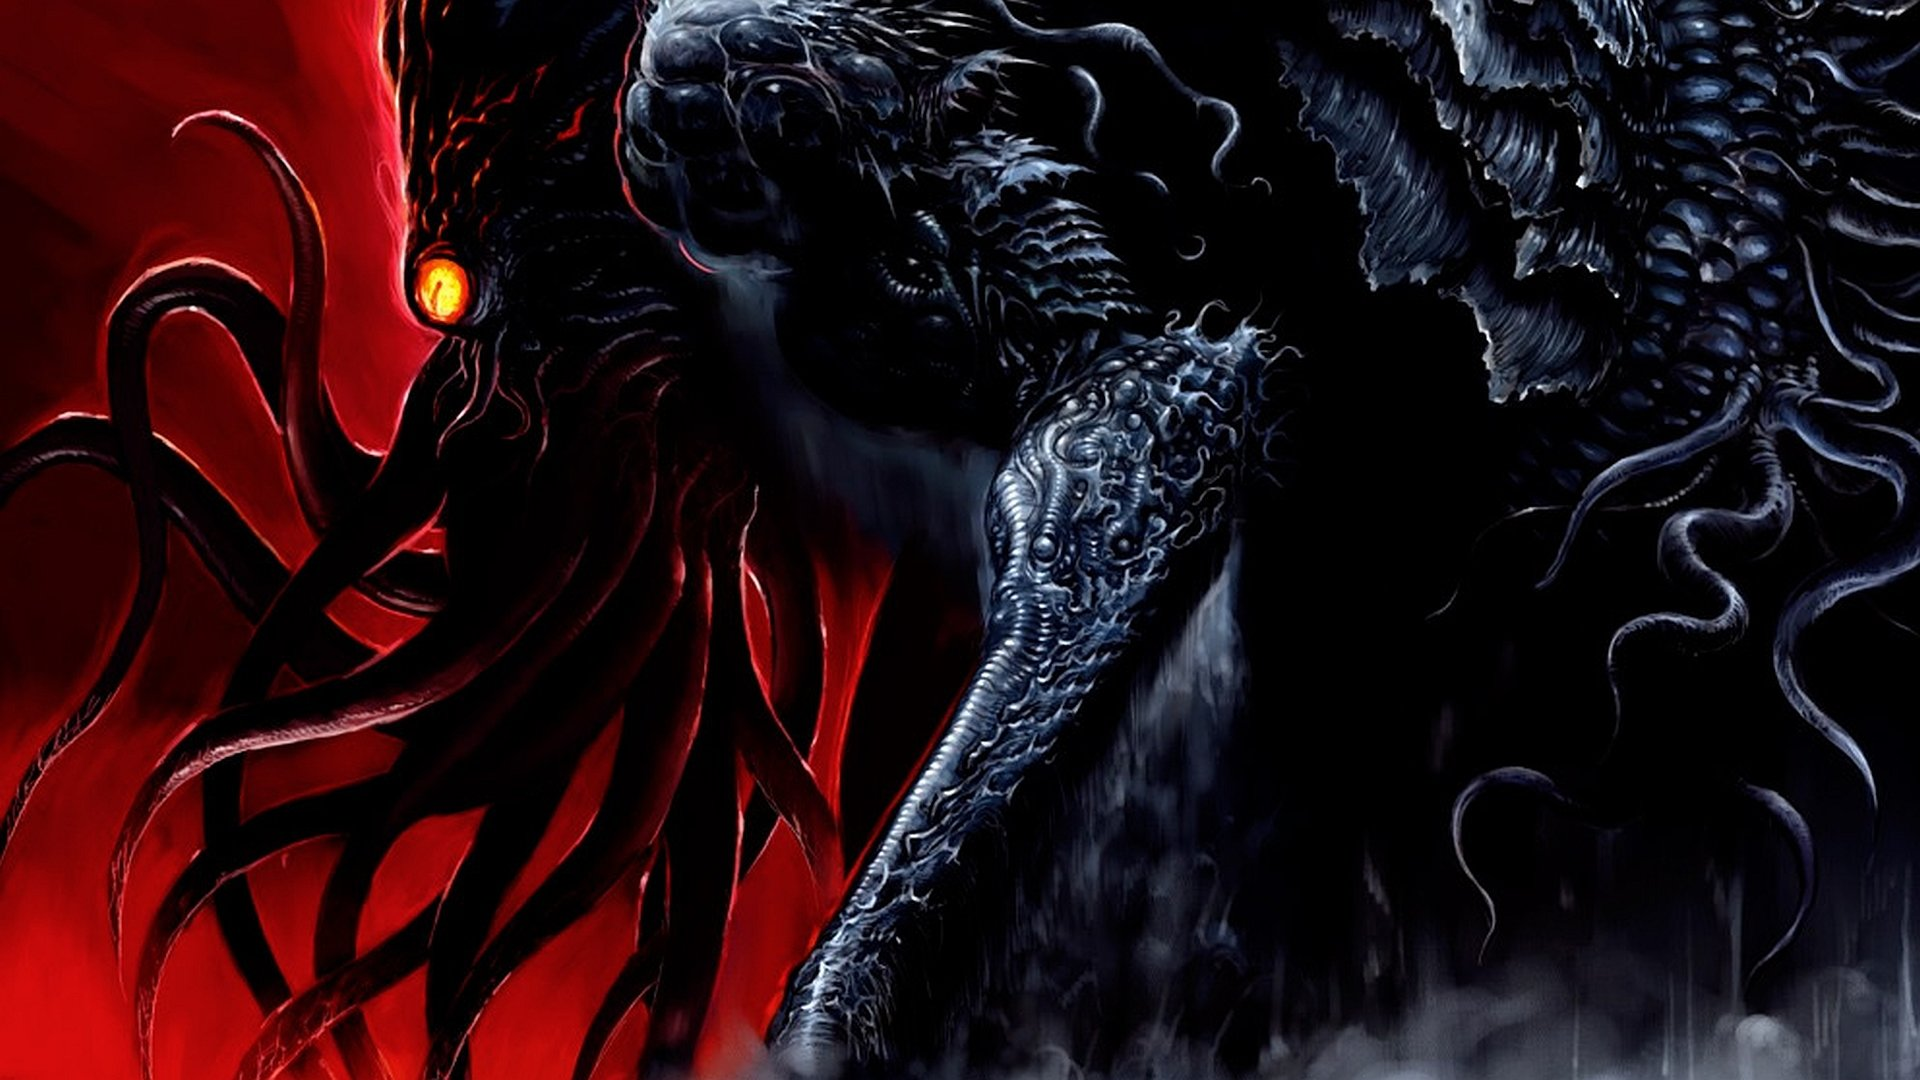 Download Hd 1920x1080 Cthulhu Desktop Wallpaper ID350984 For Free